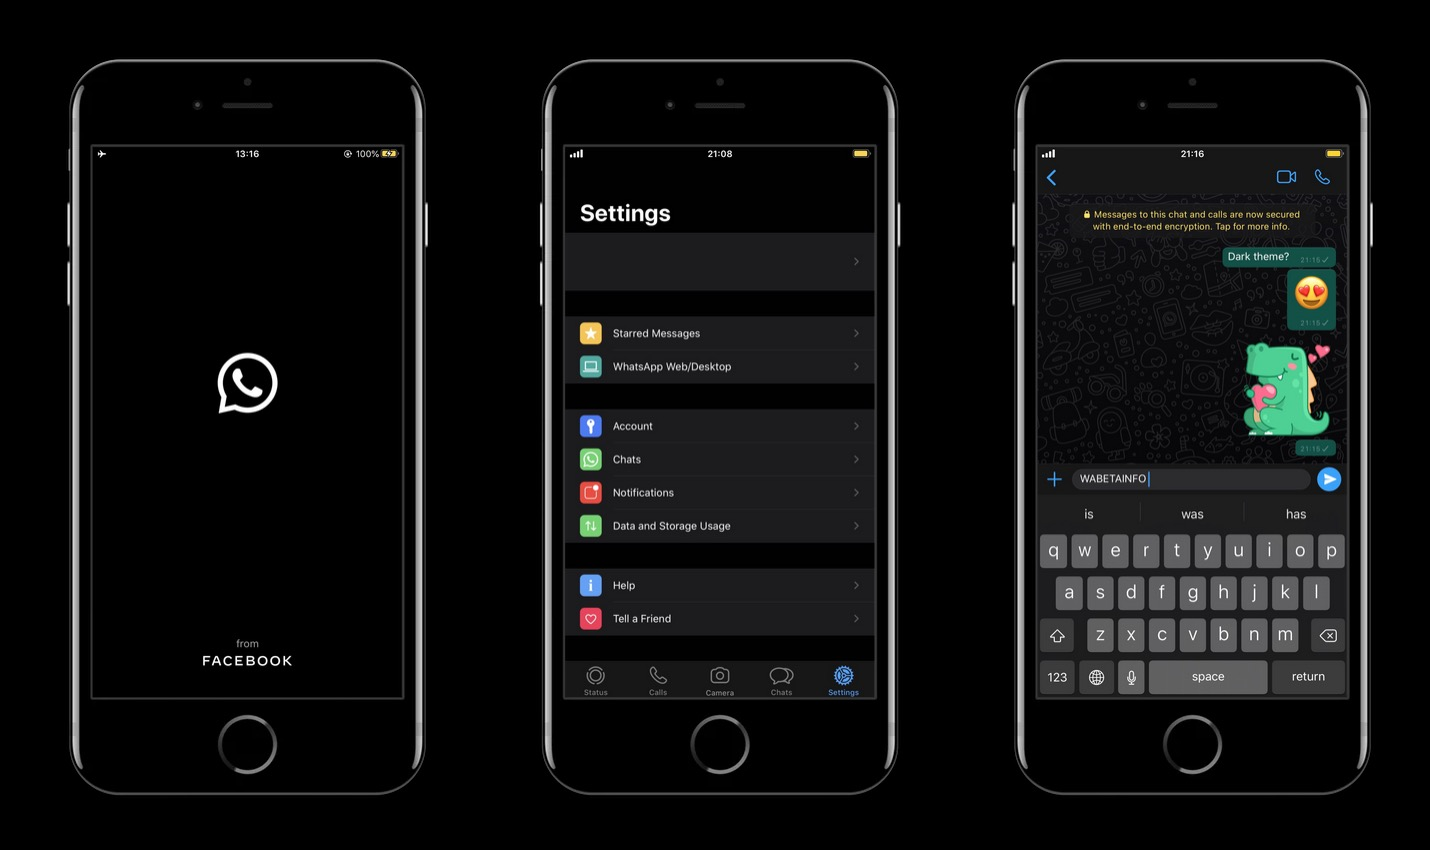 WhatsApp's Dark Mode for iPhone Inches Closer to Release, Requires iOS 13 - MacRumors